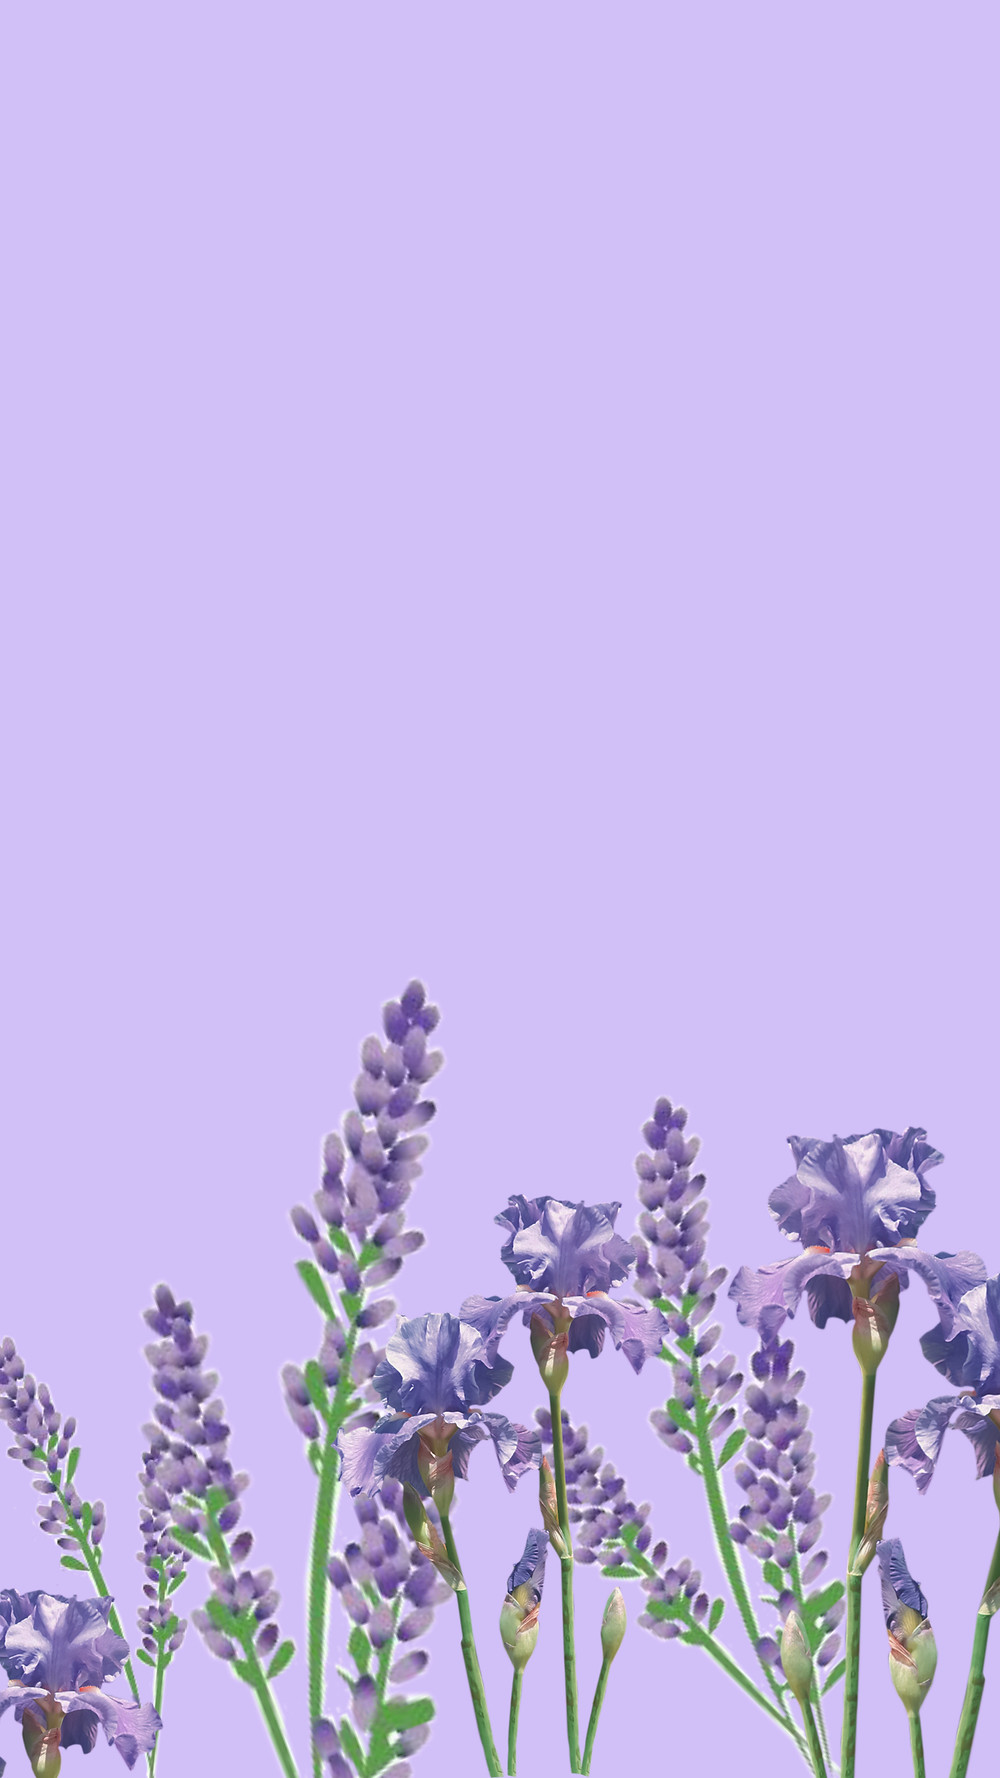 Lavendar Floral Aesthetic iPhone Background, free download.